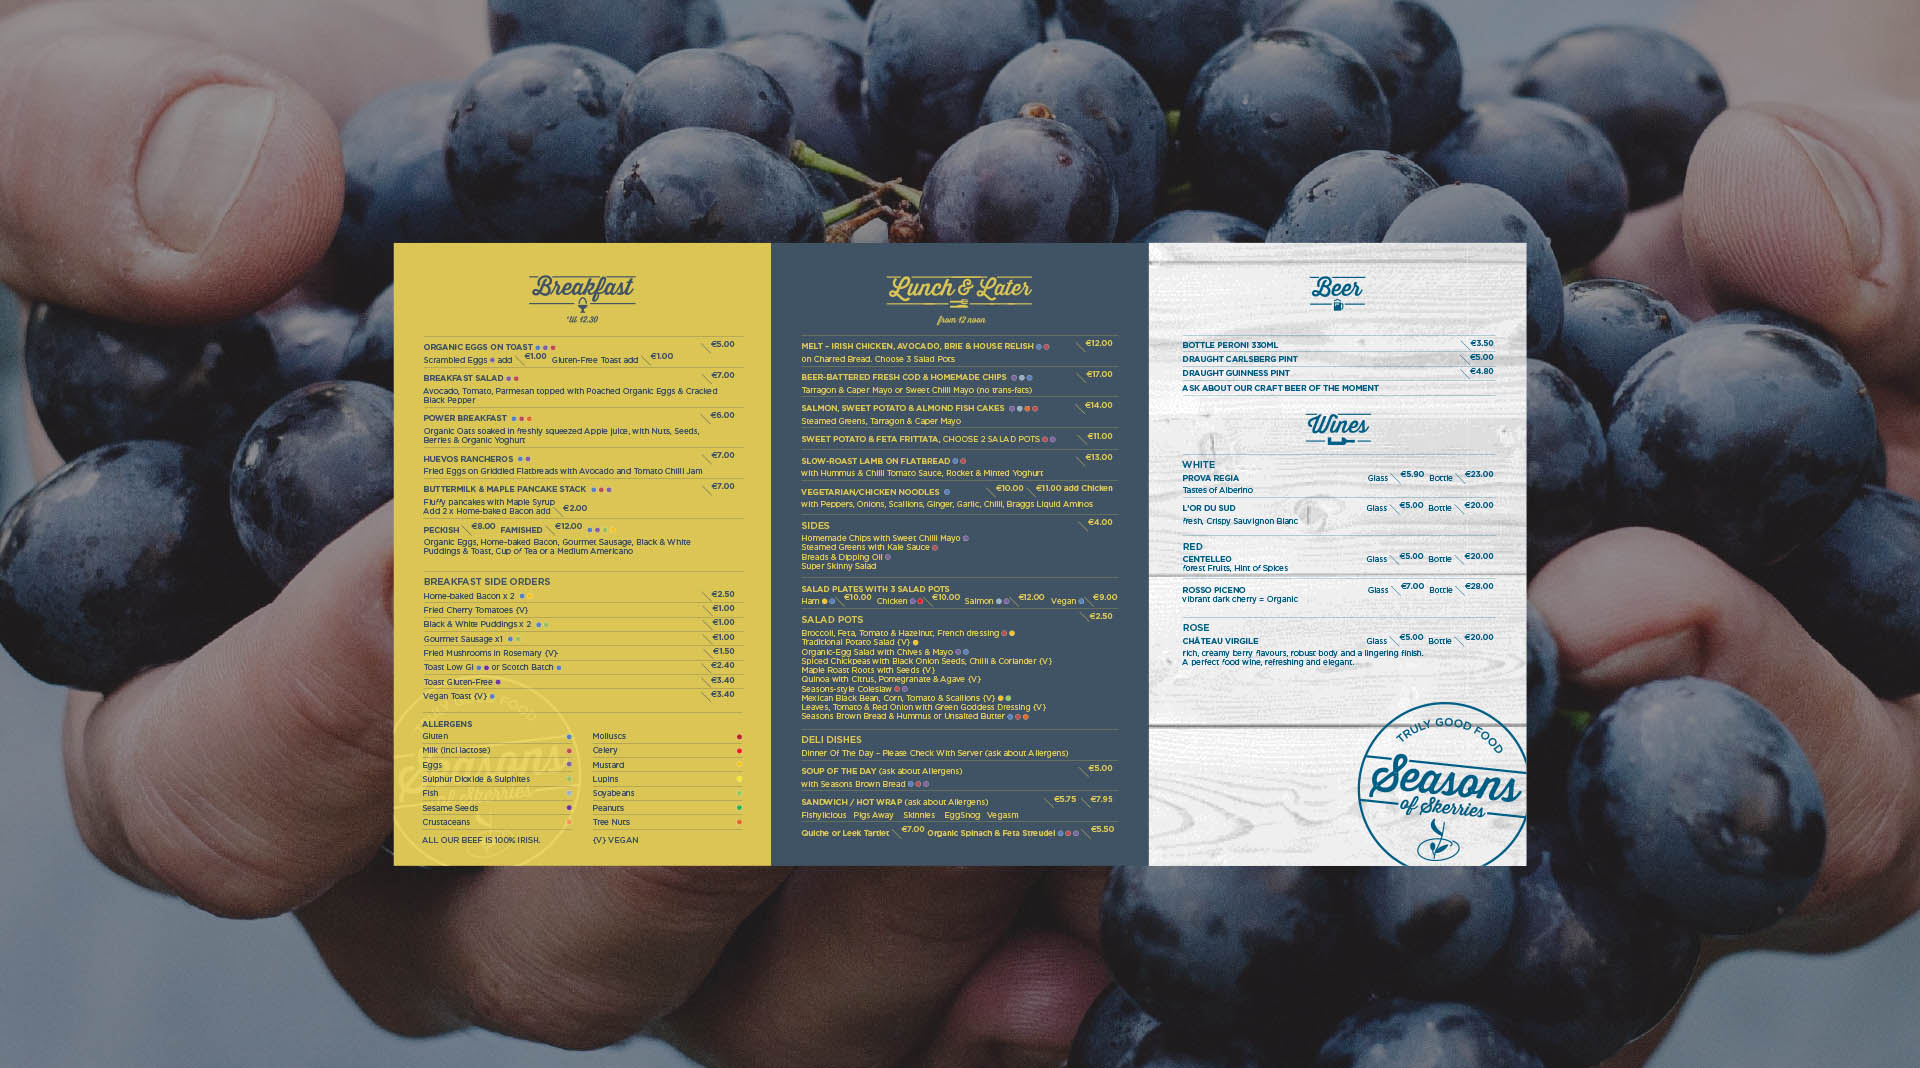 Seasons of Skerries Menu Design.